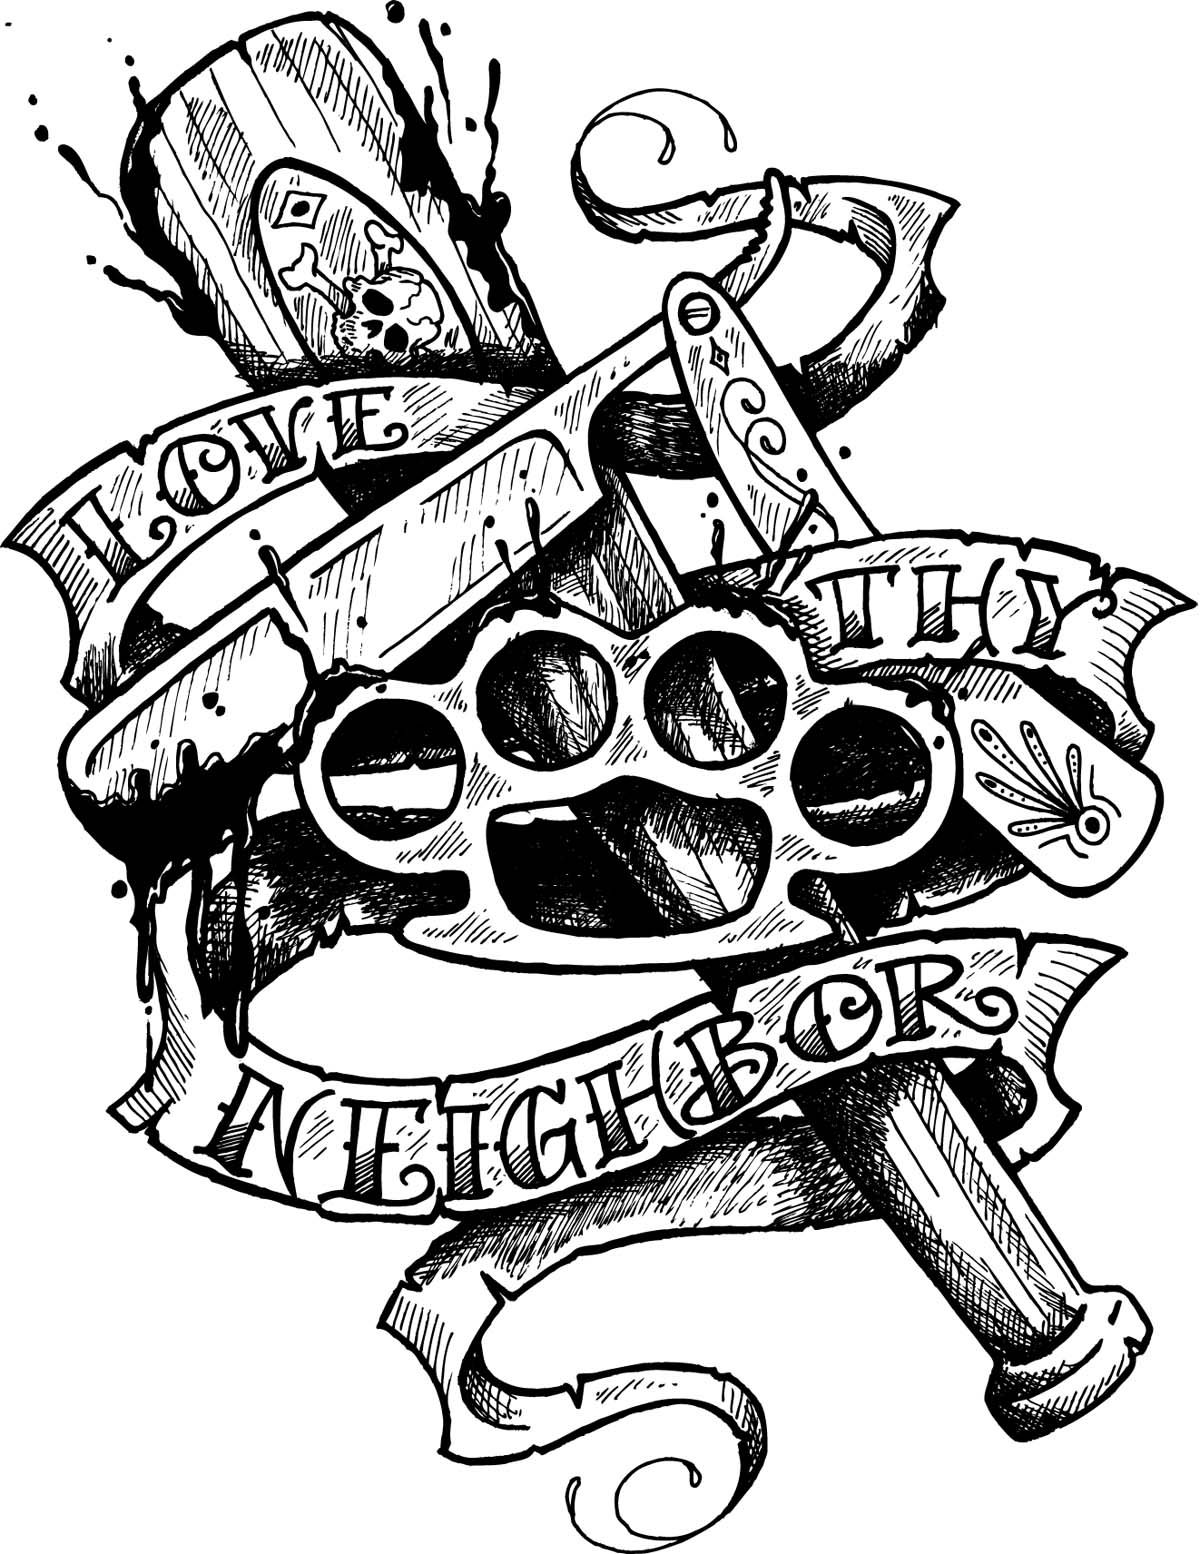 1200x1554 Gangster Tattoo Art Report Issue Within An Image. Tats